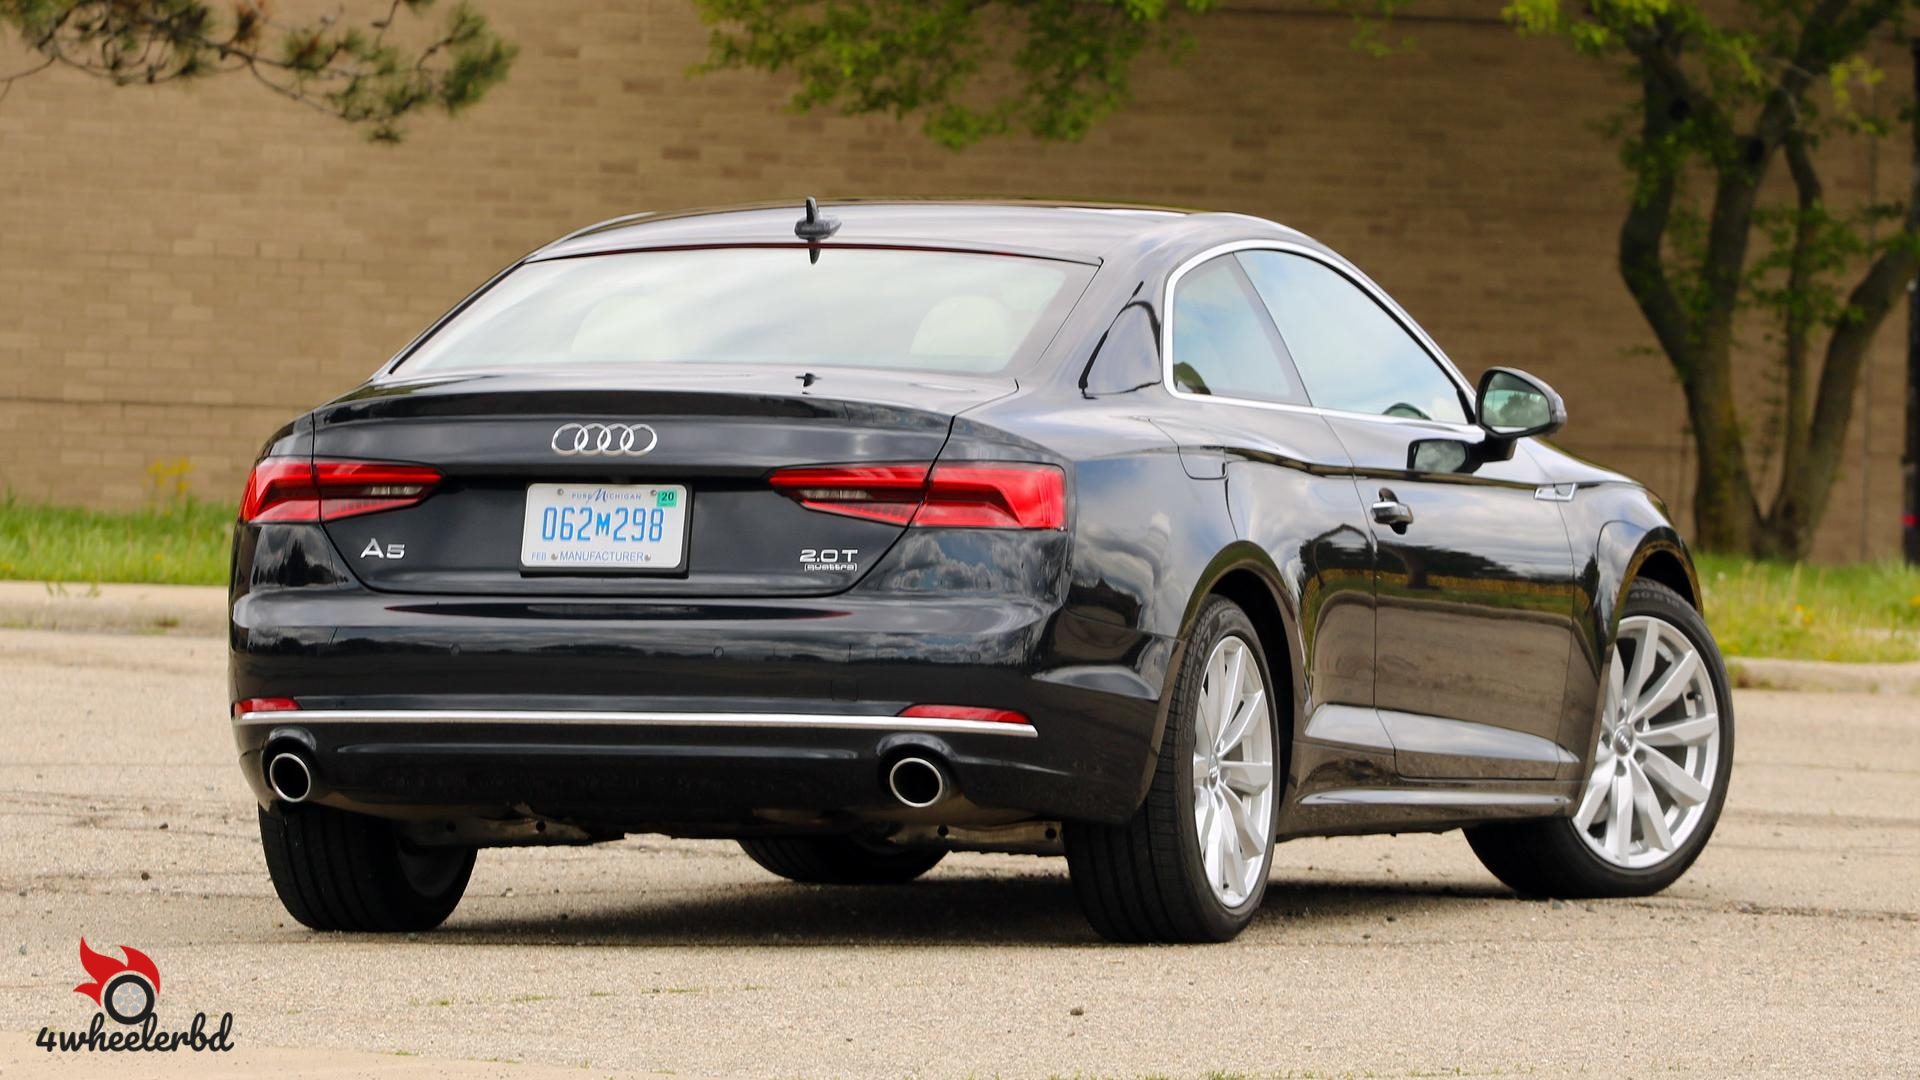 Audi A5 specification